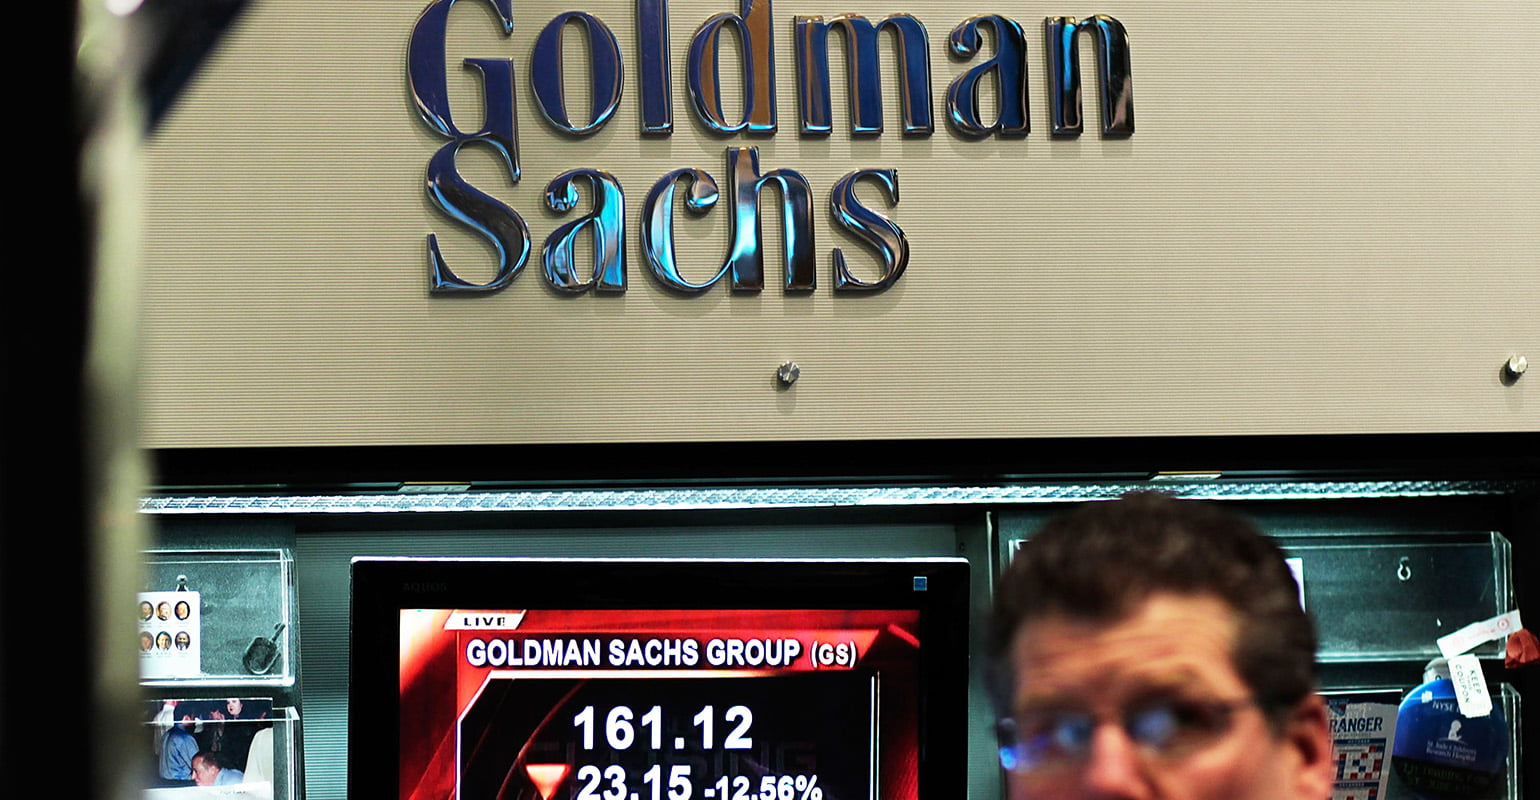 Goldman Sachs Launches Suite of Thematic ETFs